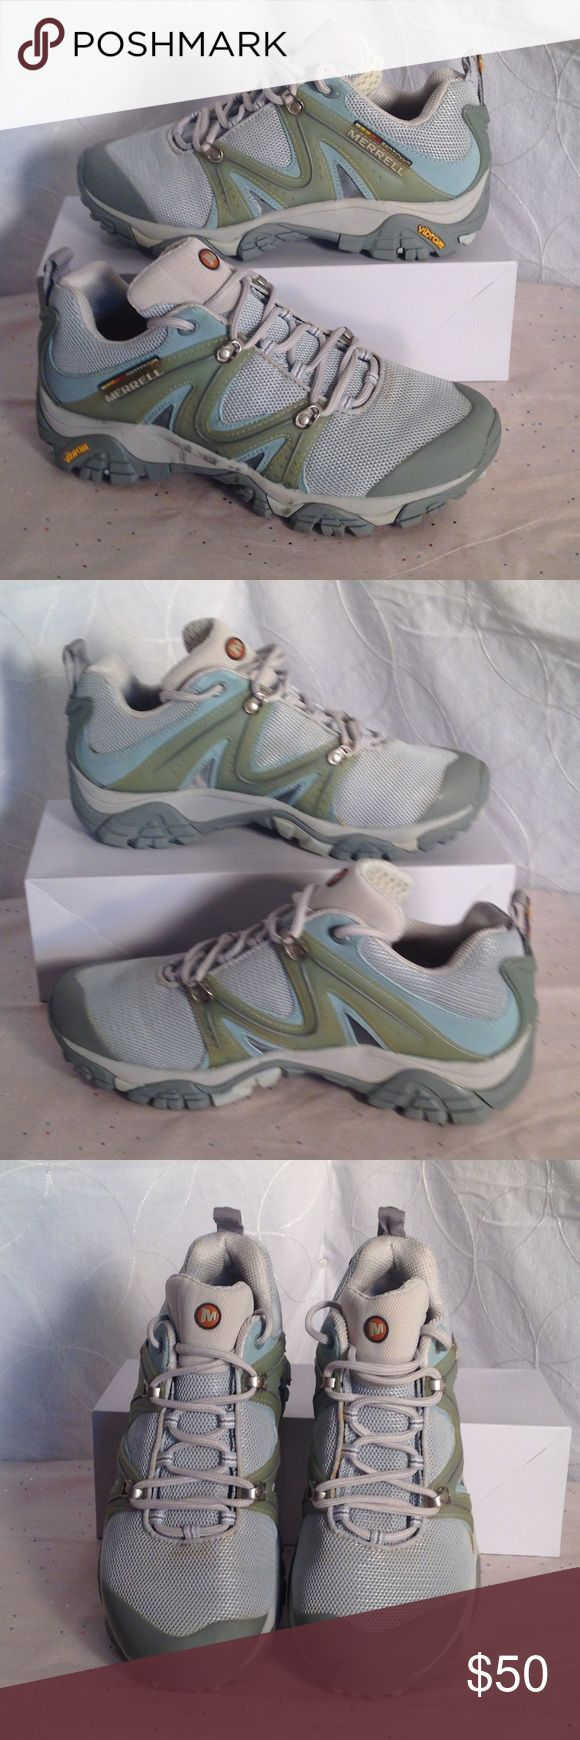 Merrell Reactor Hiking Shoes Sky Blue w/ green & grey. Reactor Ventilator Continuum Hiking shoe w/ Padded tongue...Removable Air Cushion Insole & Vibram outsole for excellent grip! Worn Once! Make me an Offer OR Bundle & Save! Merrell Shoes Athletic Shoes